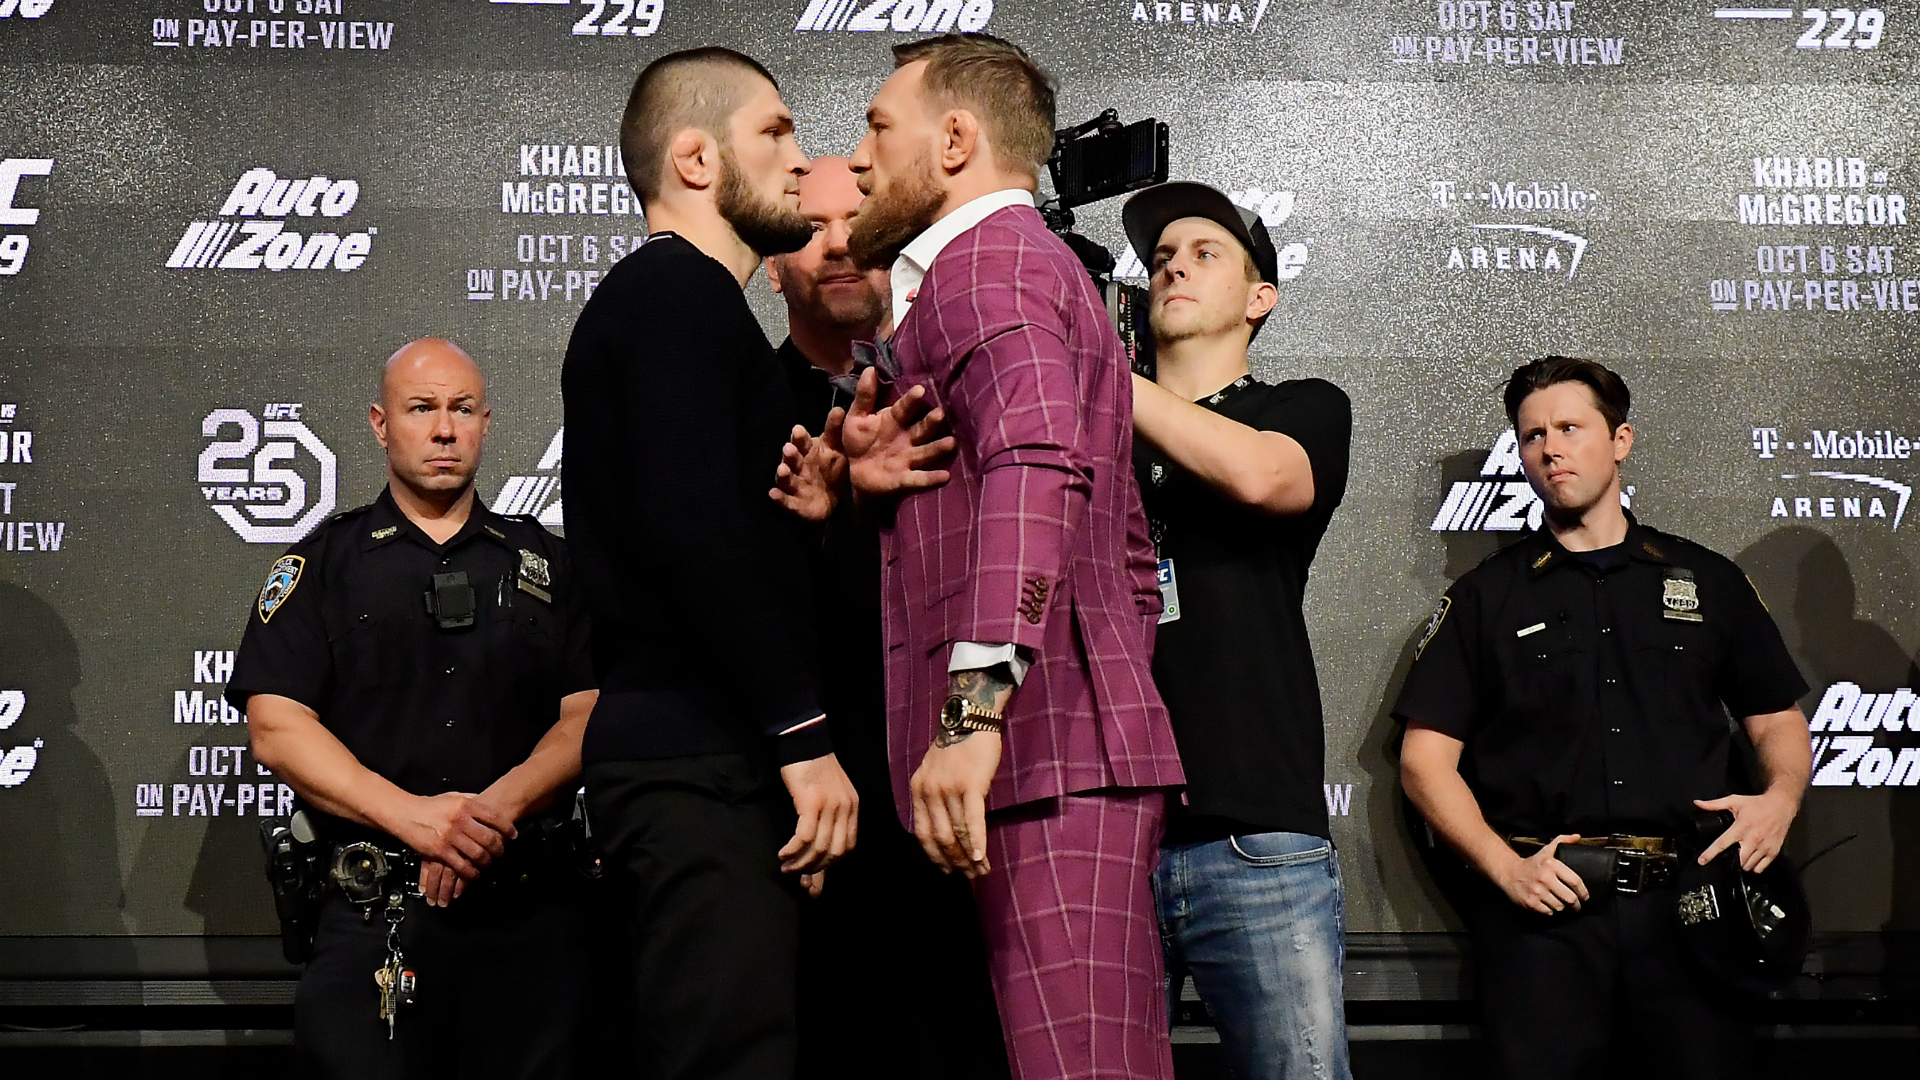 Khabib on Conor McGregor rematch rumours: $100m to beat up that idiot again? That's not rational